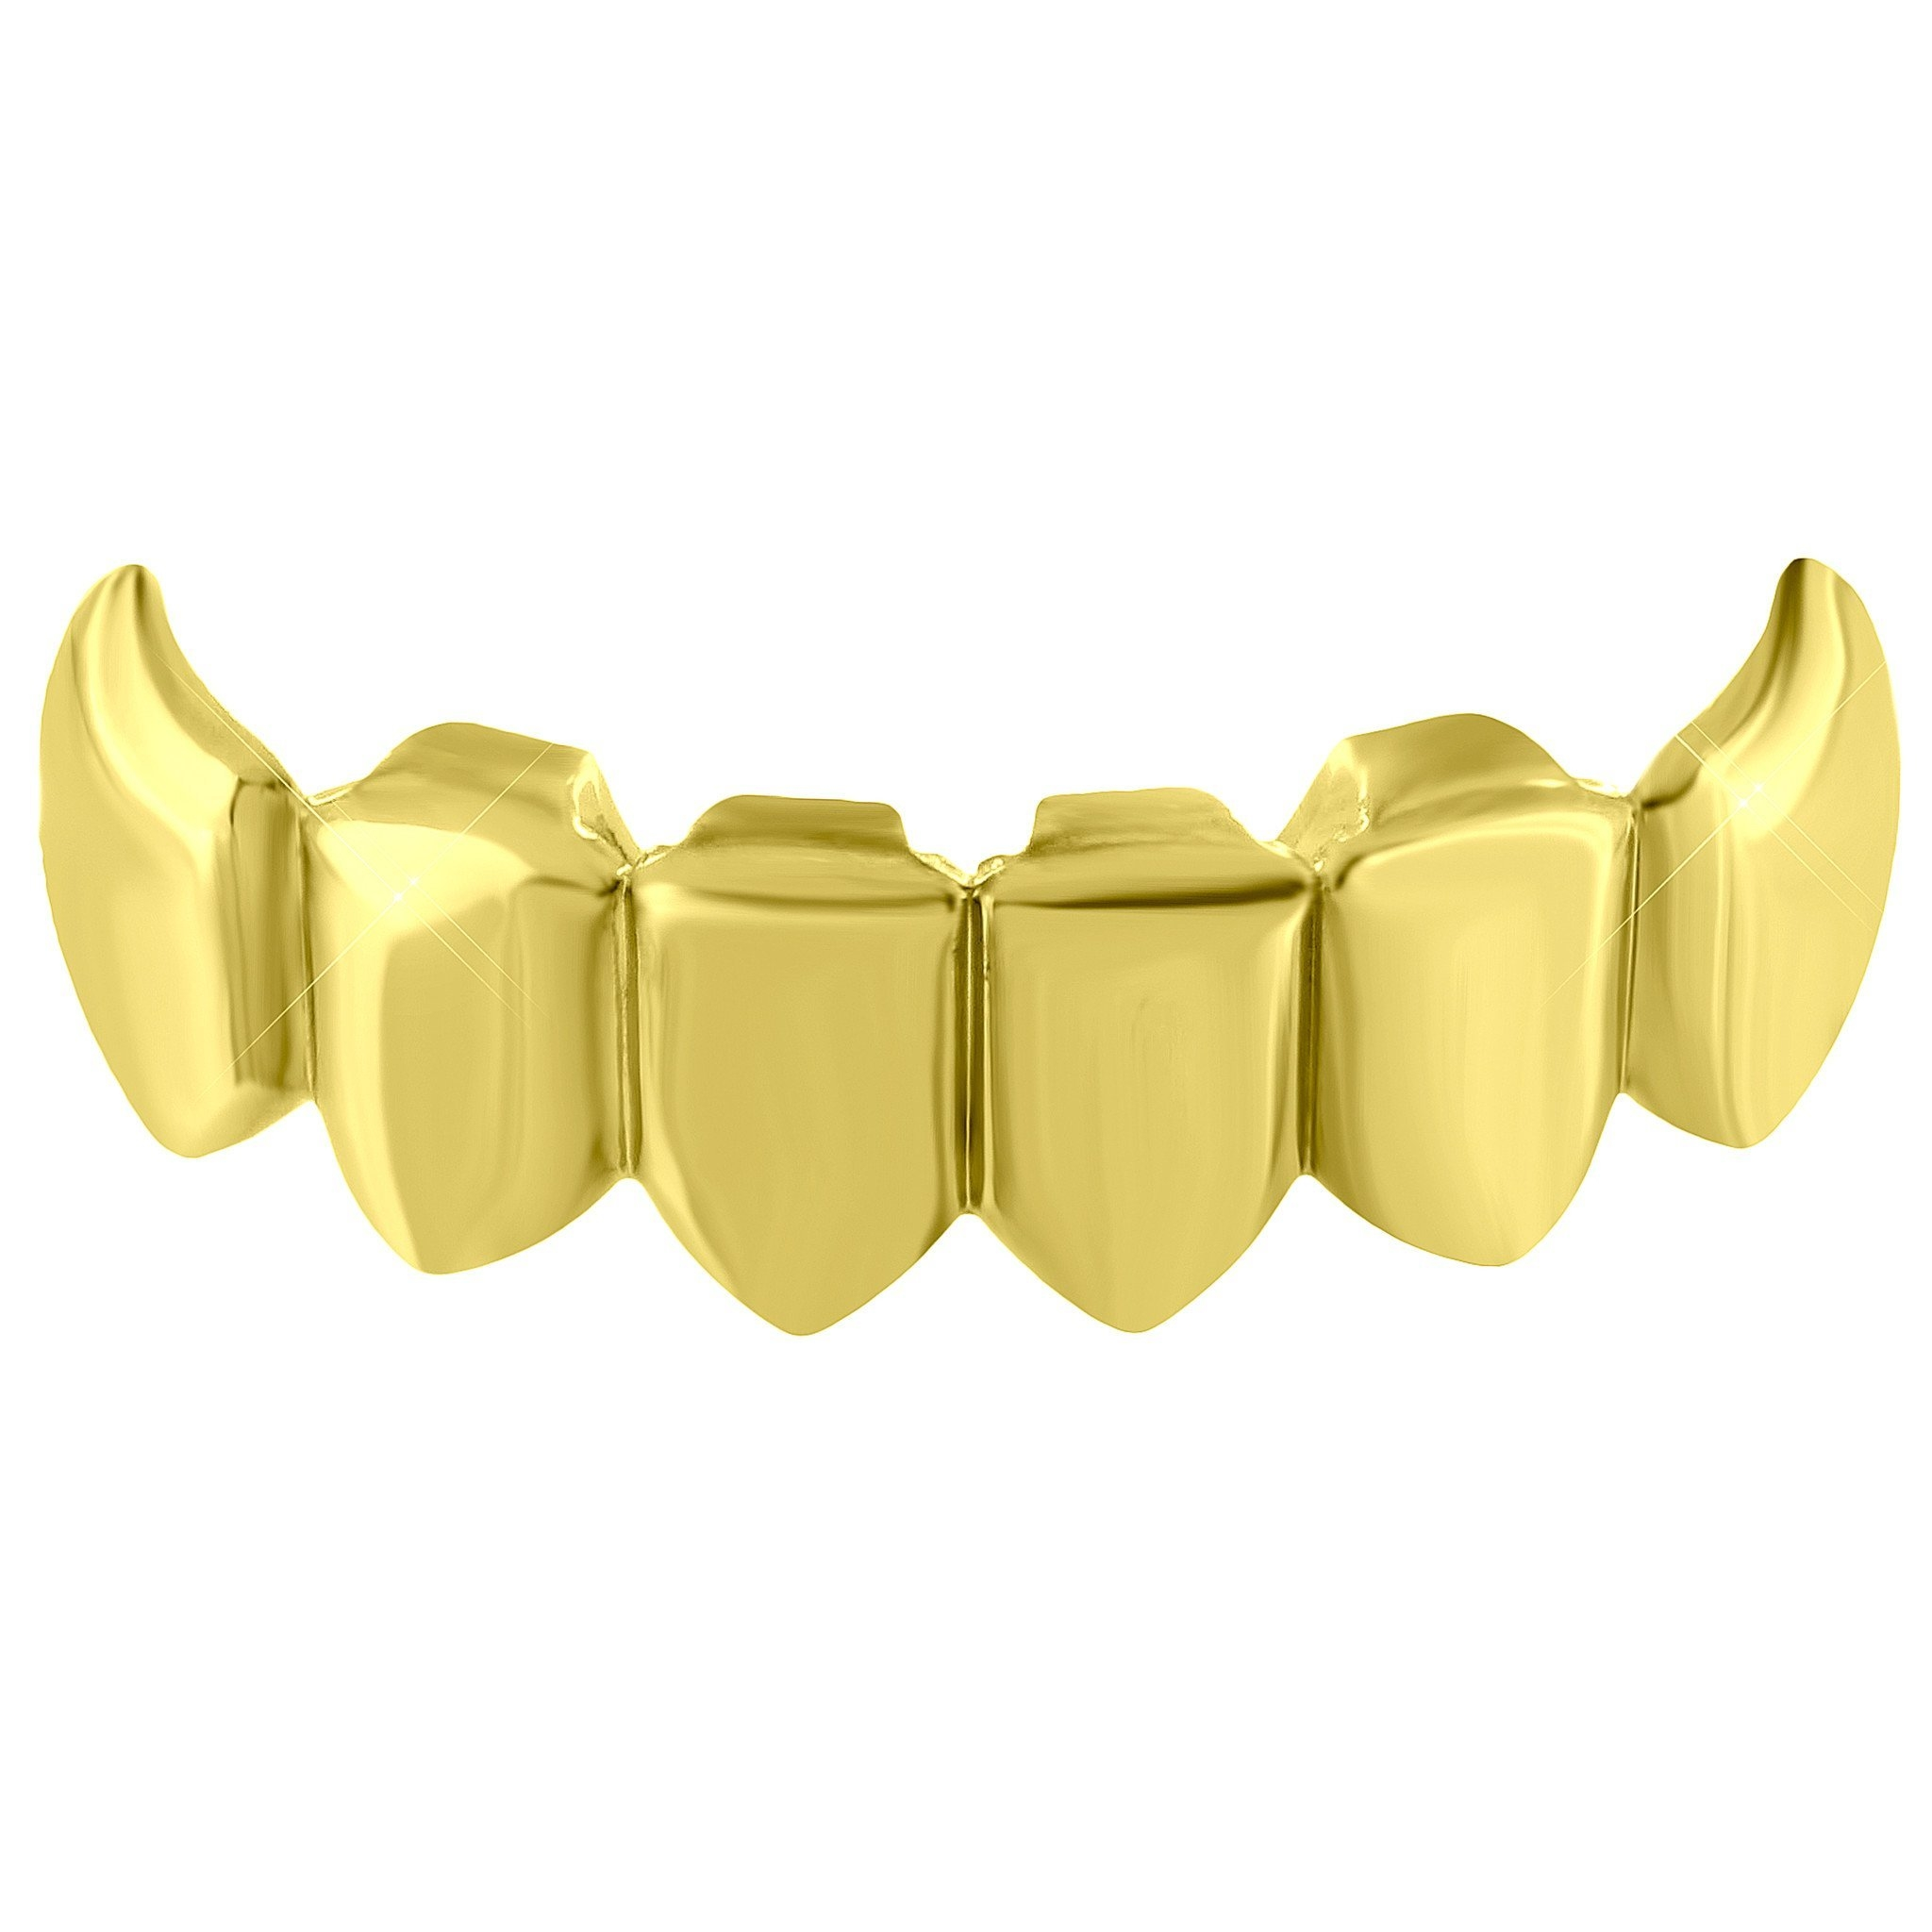 Image of Bottom Teeth Grillz Top Mouth Caps Yellow Gold Tone Hip Hop